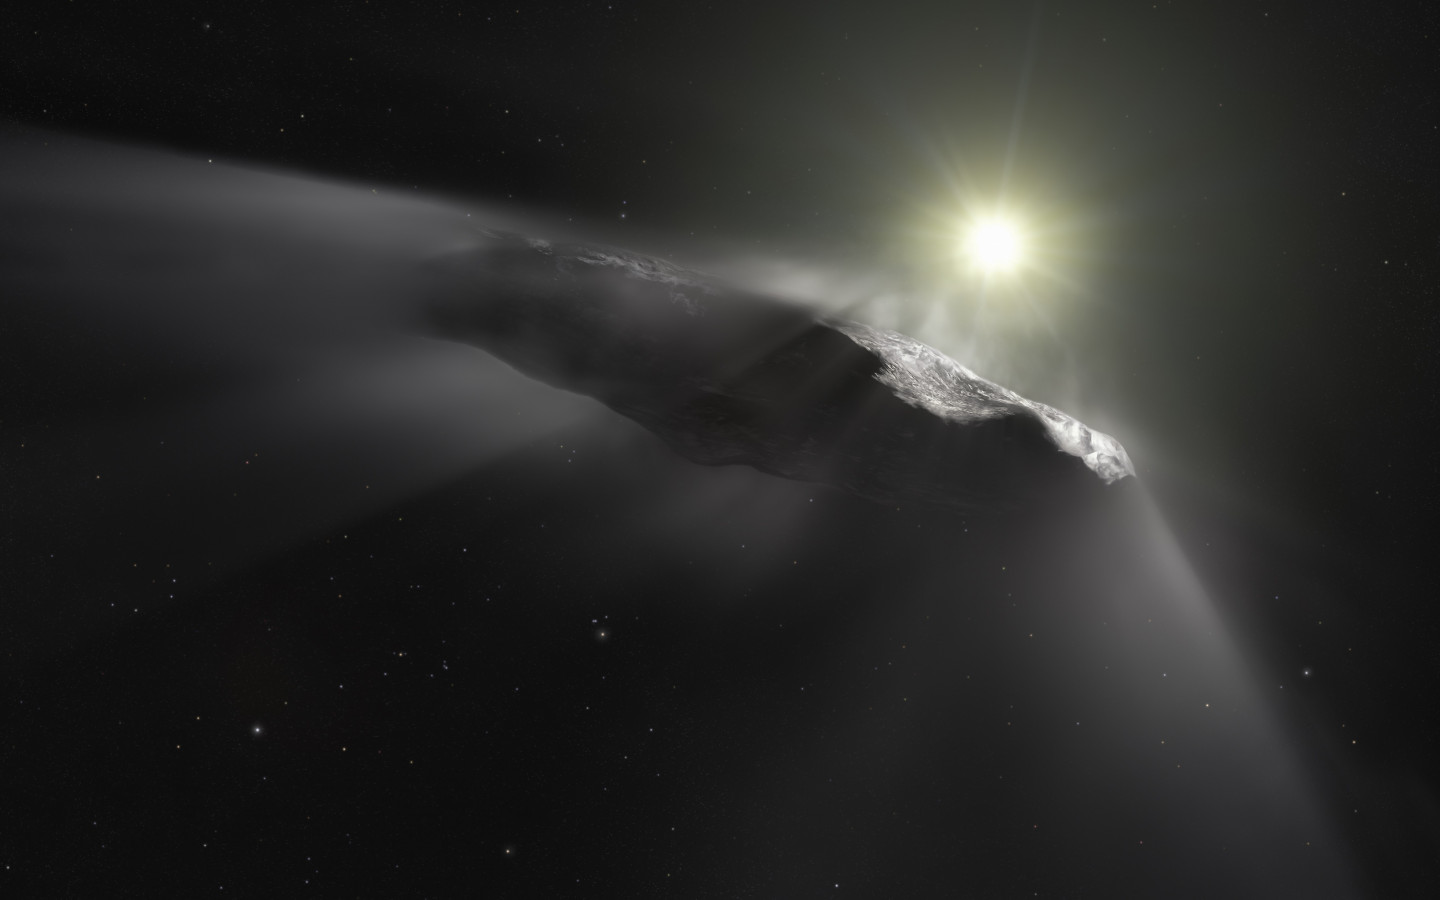 Oumuamua asteroid wallpaper 1440x900